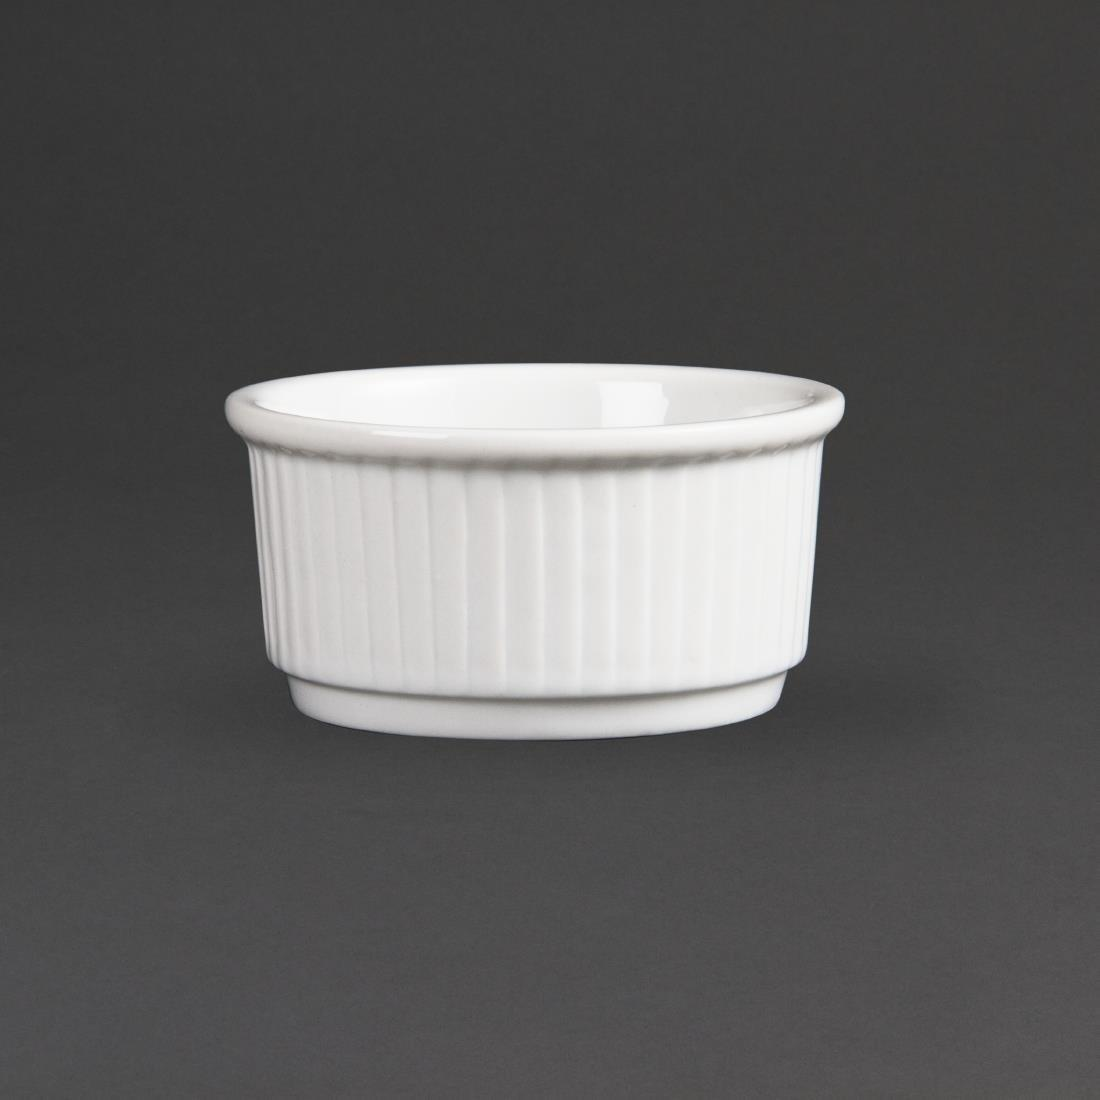 W421 - Olympia Whiteware Stacking Ramekin